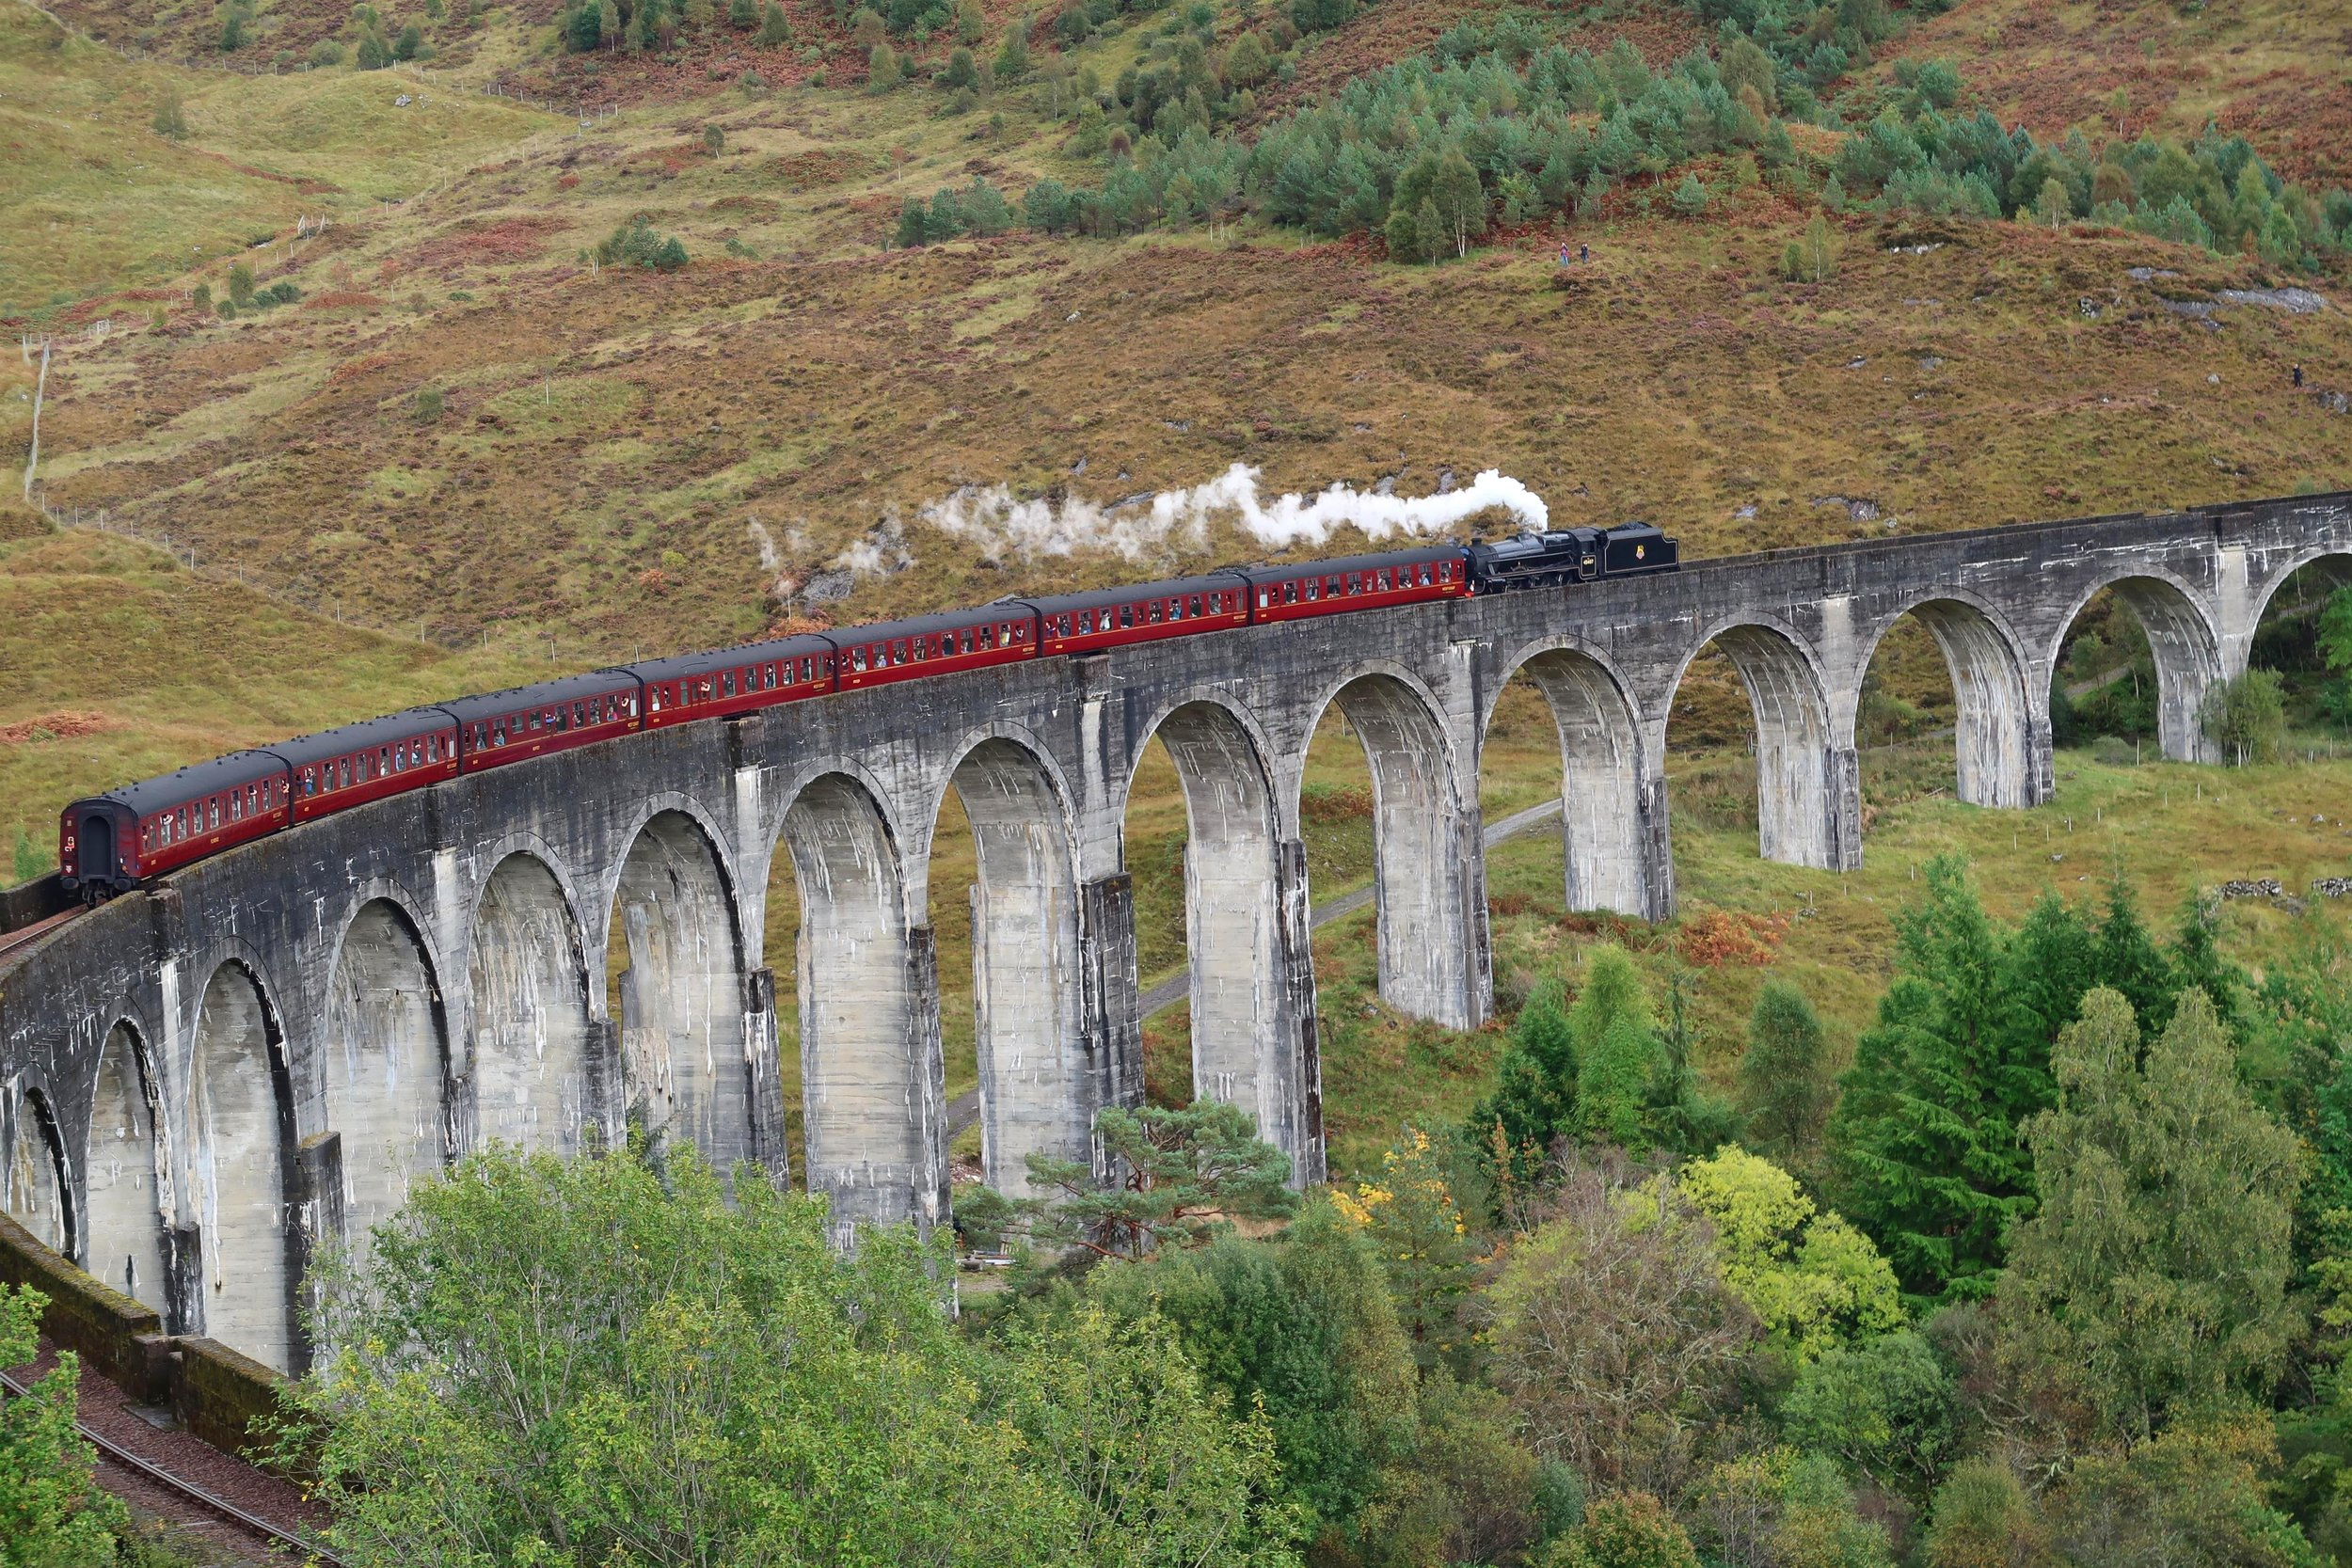 Visit the Glenfinnan Viaduct - Every Harry Potter fan won't want to miss this sight. Watch the Hogwart's Express fly along the most iconic of Scottish railway lines.